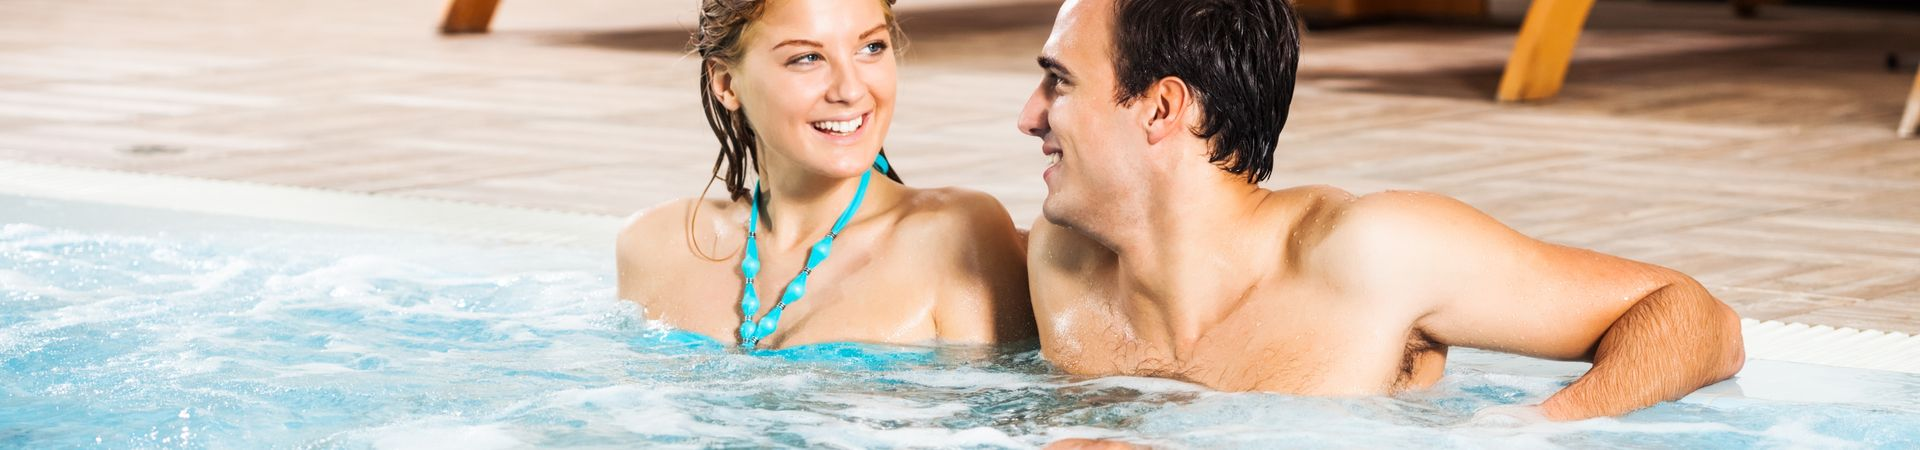 Therme in Bad Aibling mit Hotel